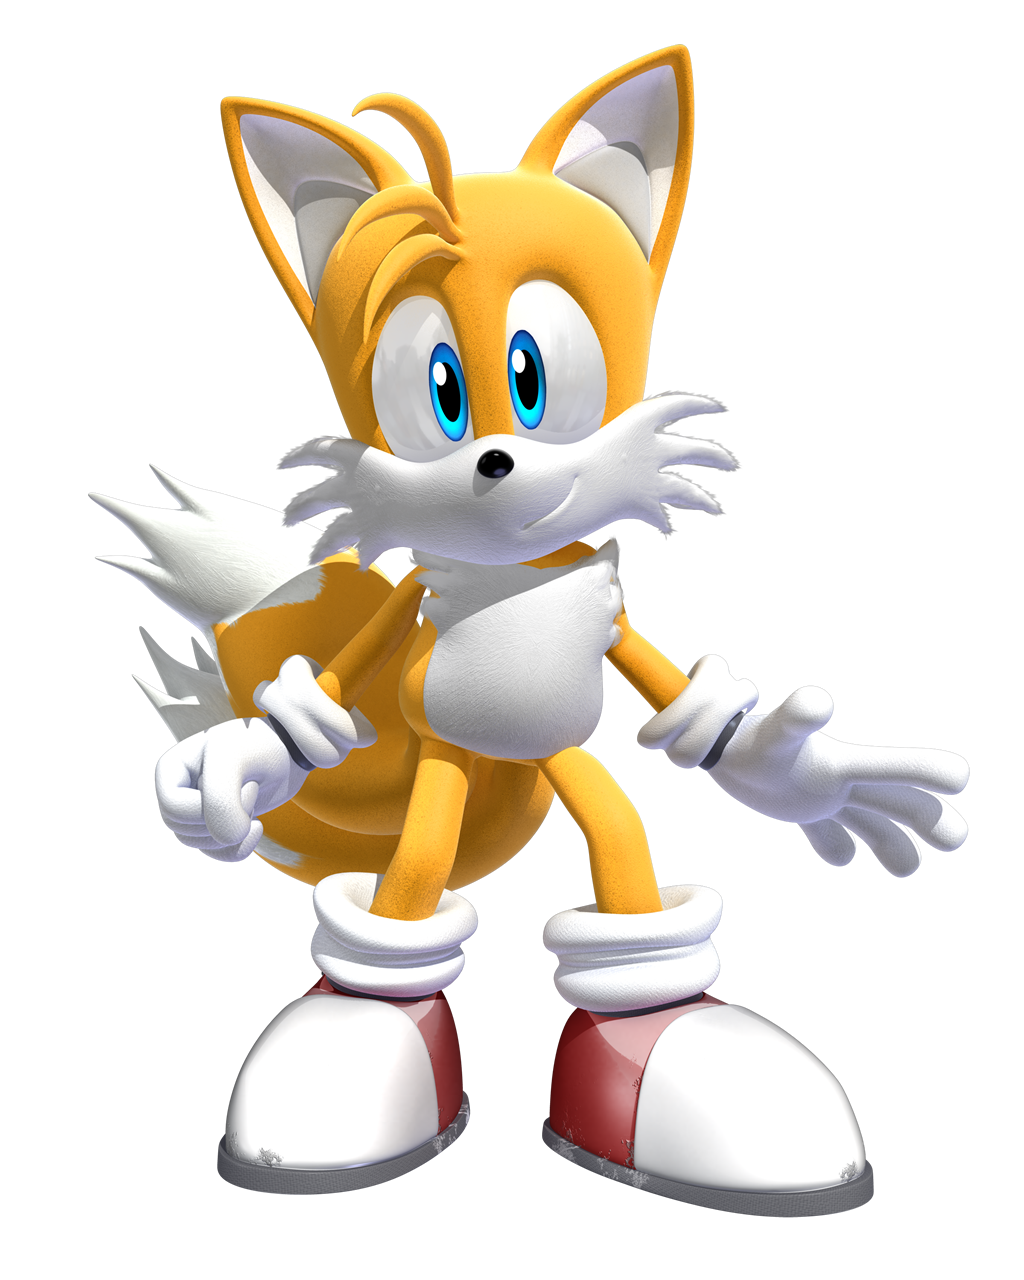 Miles Tails Prower: Passion Blog #7: Sonic The Hedgehog; A Video Game Icon